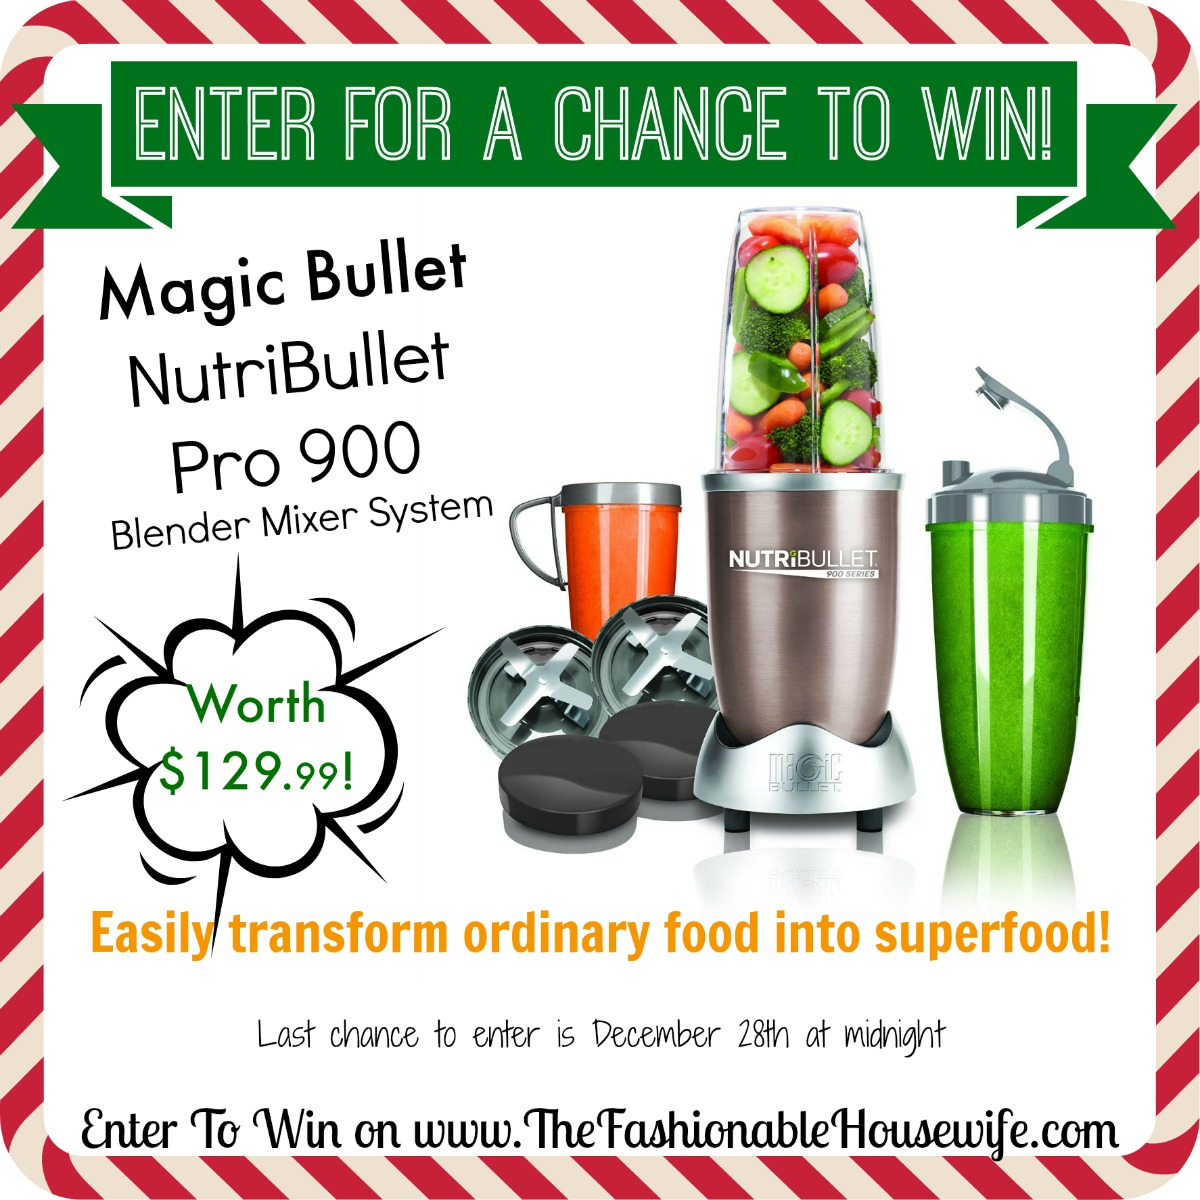 Enter for a chance to win NutriBullet Pro 900